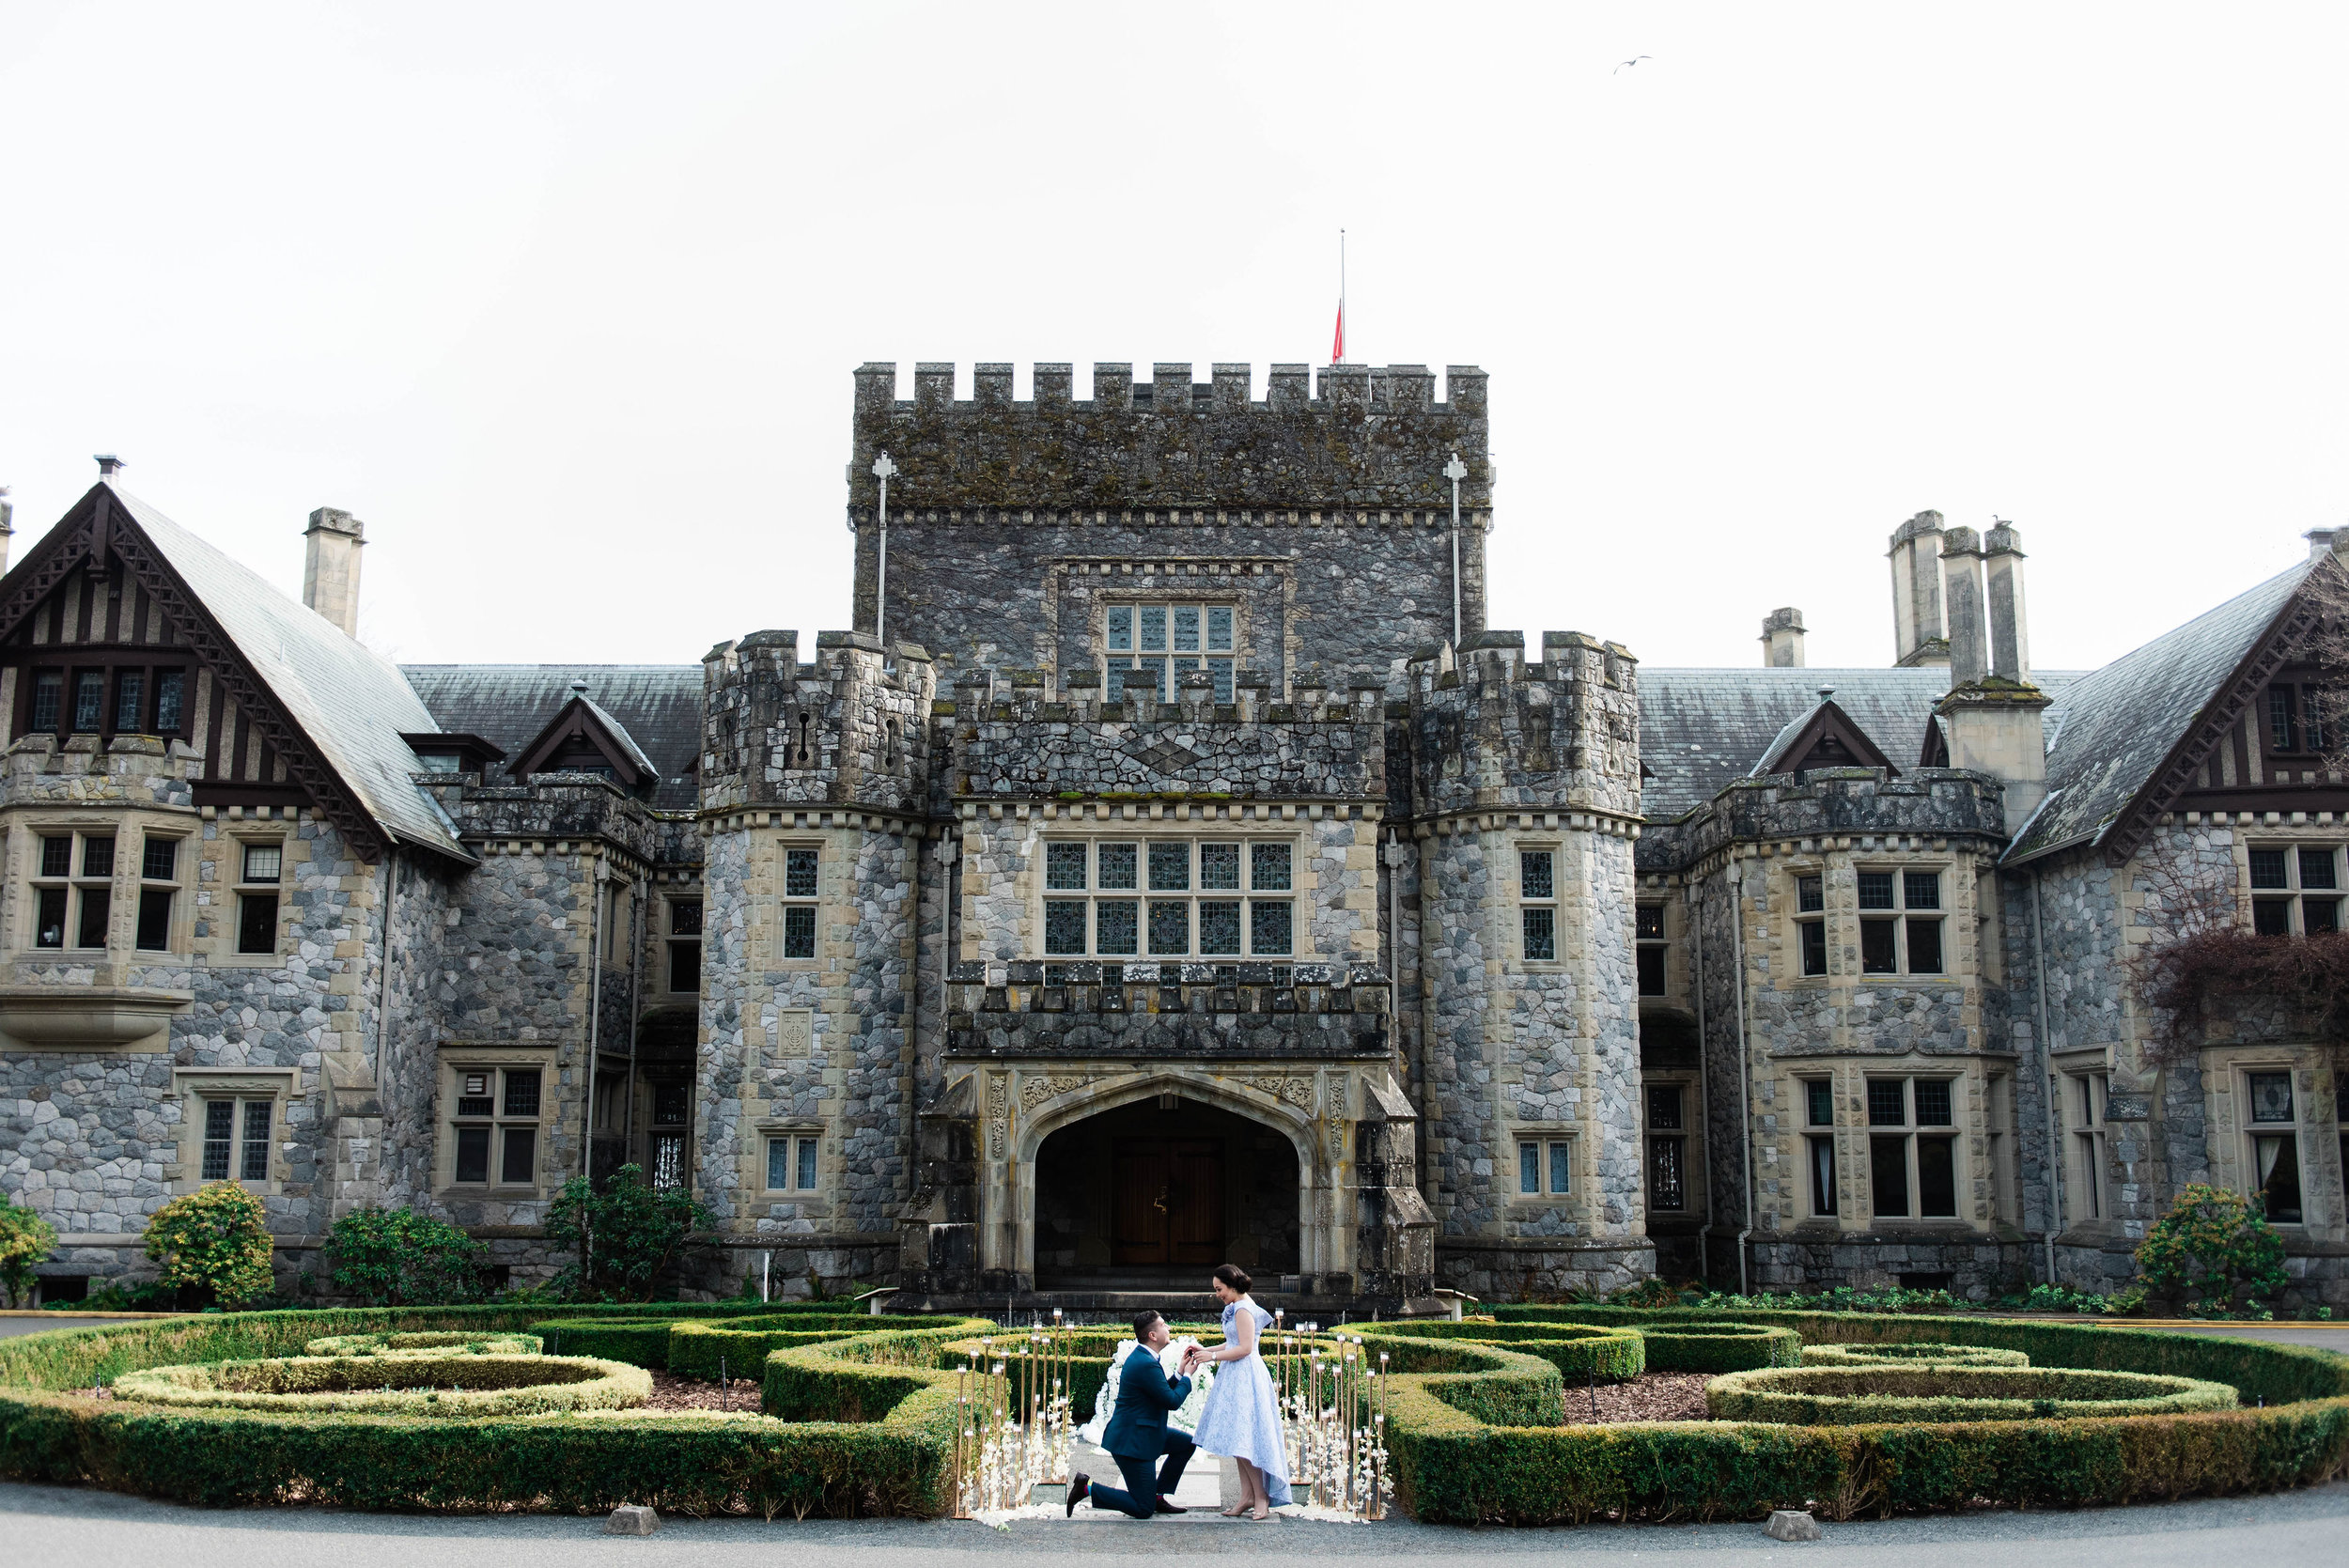 Hatley Castle Proposal  The Hatley Park estate is one of the city's most sought after marriage proposal locations! It boasts 565 oceanfront acres with amazing view of the Olympic Mountains. The estate's 650 acres is best known for its formal Italian, Rose and Japanese Gardens. Proposals are permitted on the castle grounds with 3 weeks advance notice of the requested date. (Belluxe Photography)